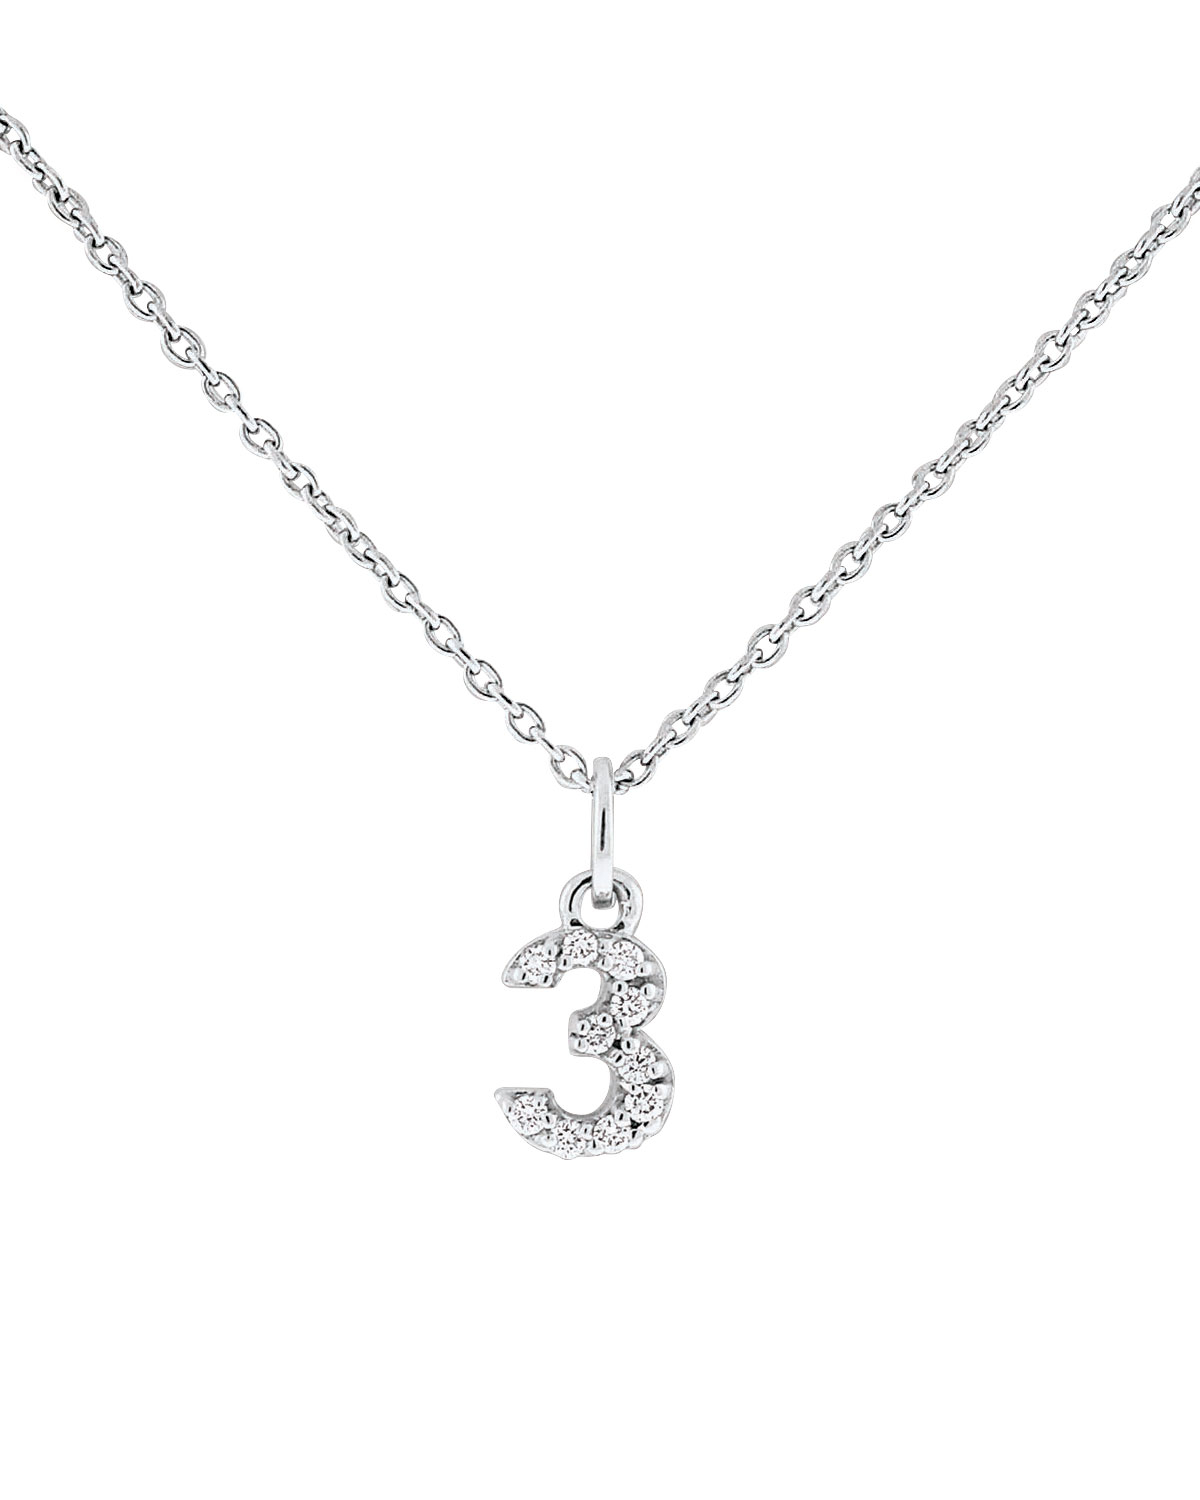 Lyst kc designs diamond number necklace in metallic gallery mozeypictures Images